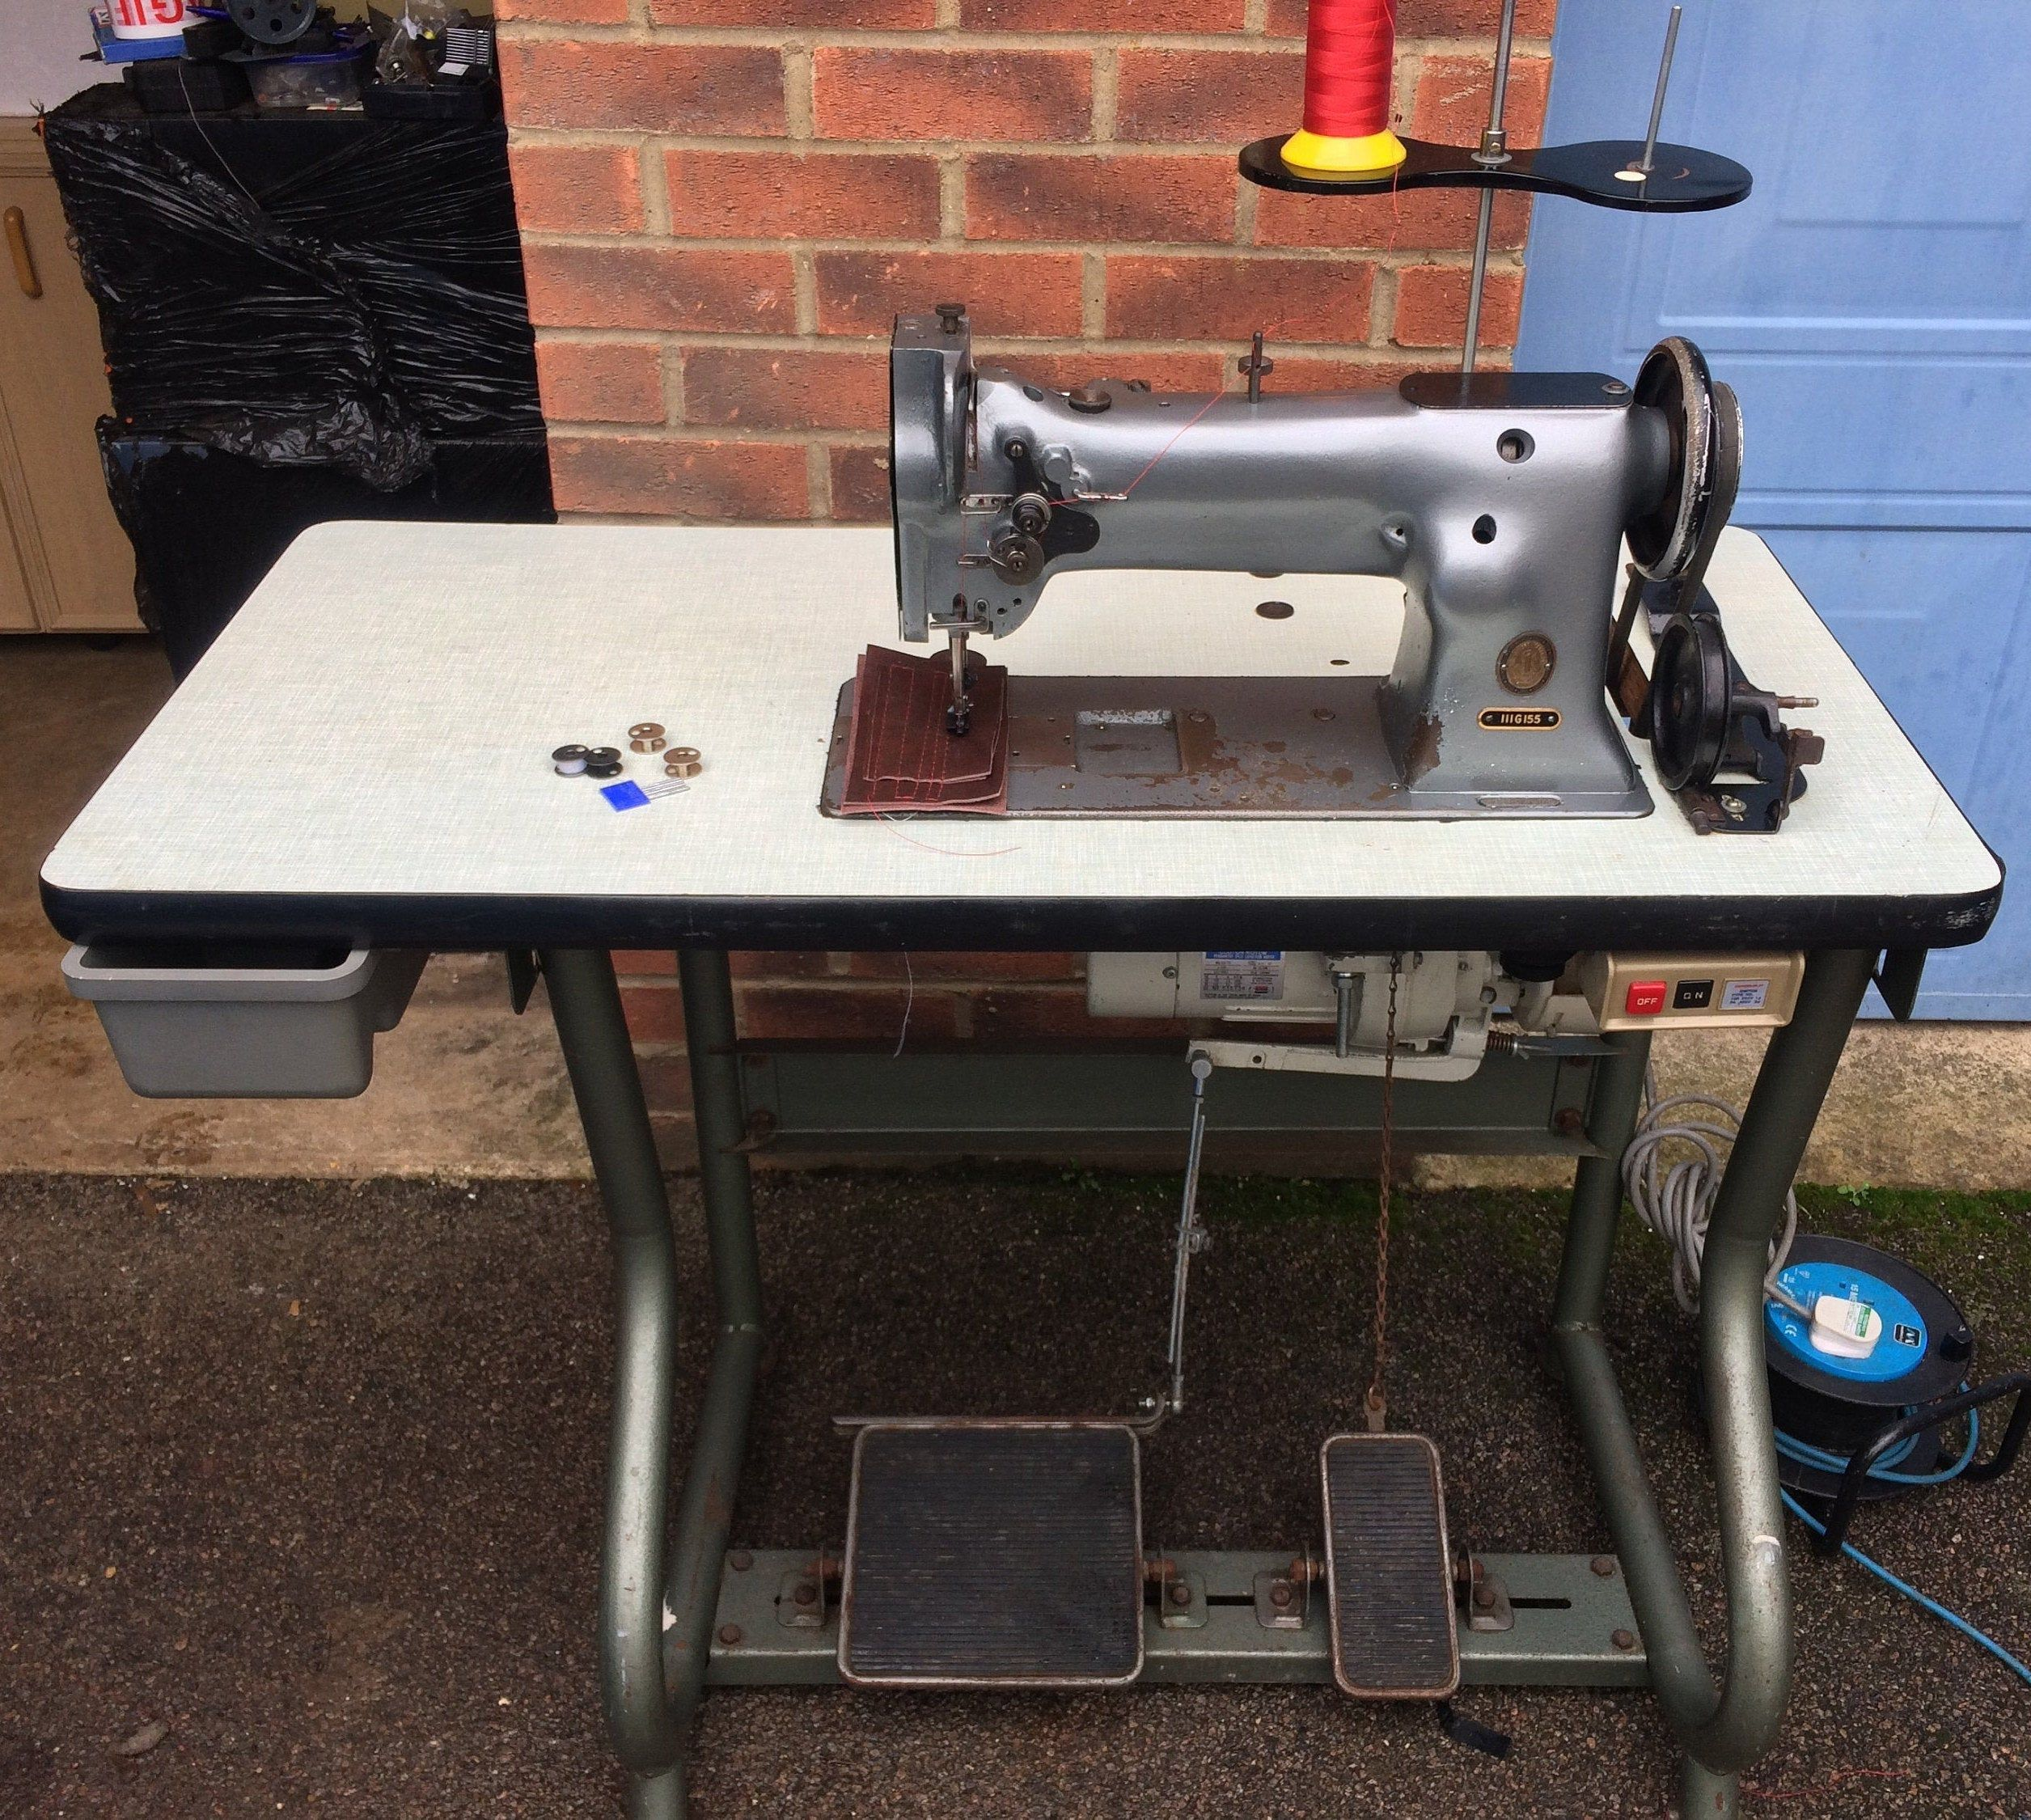 Singer 111g155 Compound Feed Industrial Walking Foot Sewing Machine For Horse Rugs Curtains Handba In 2020 Sewing Machine Vintage Sewing Machines Old Sewing Machines